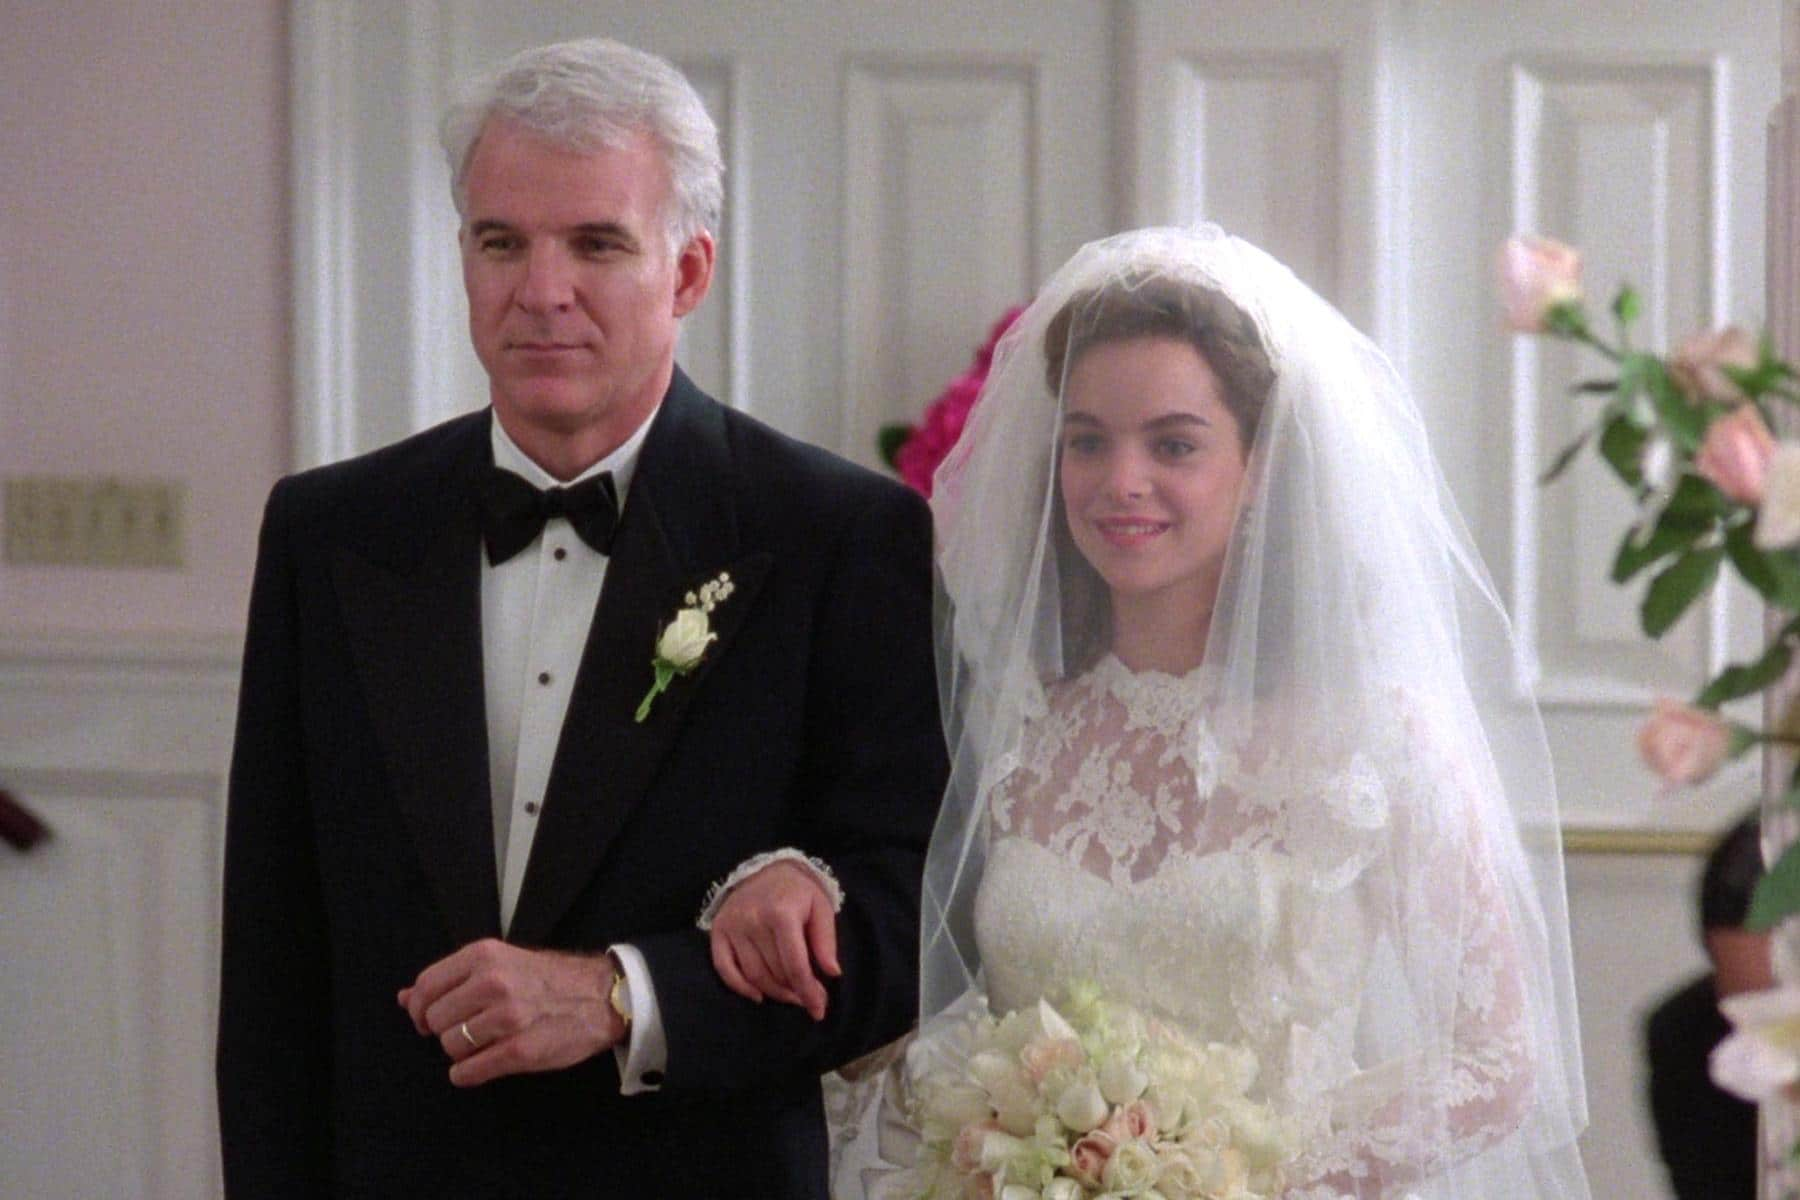 'Father of the Bride' Cast Reunites In Mini-Sequel For Charity